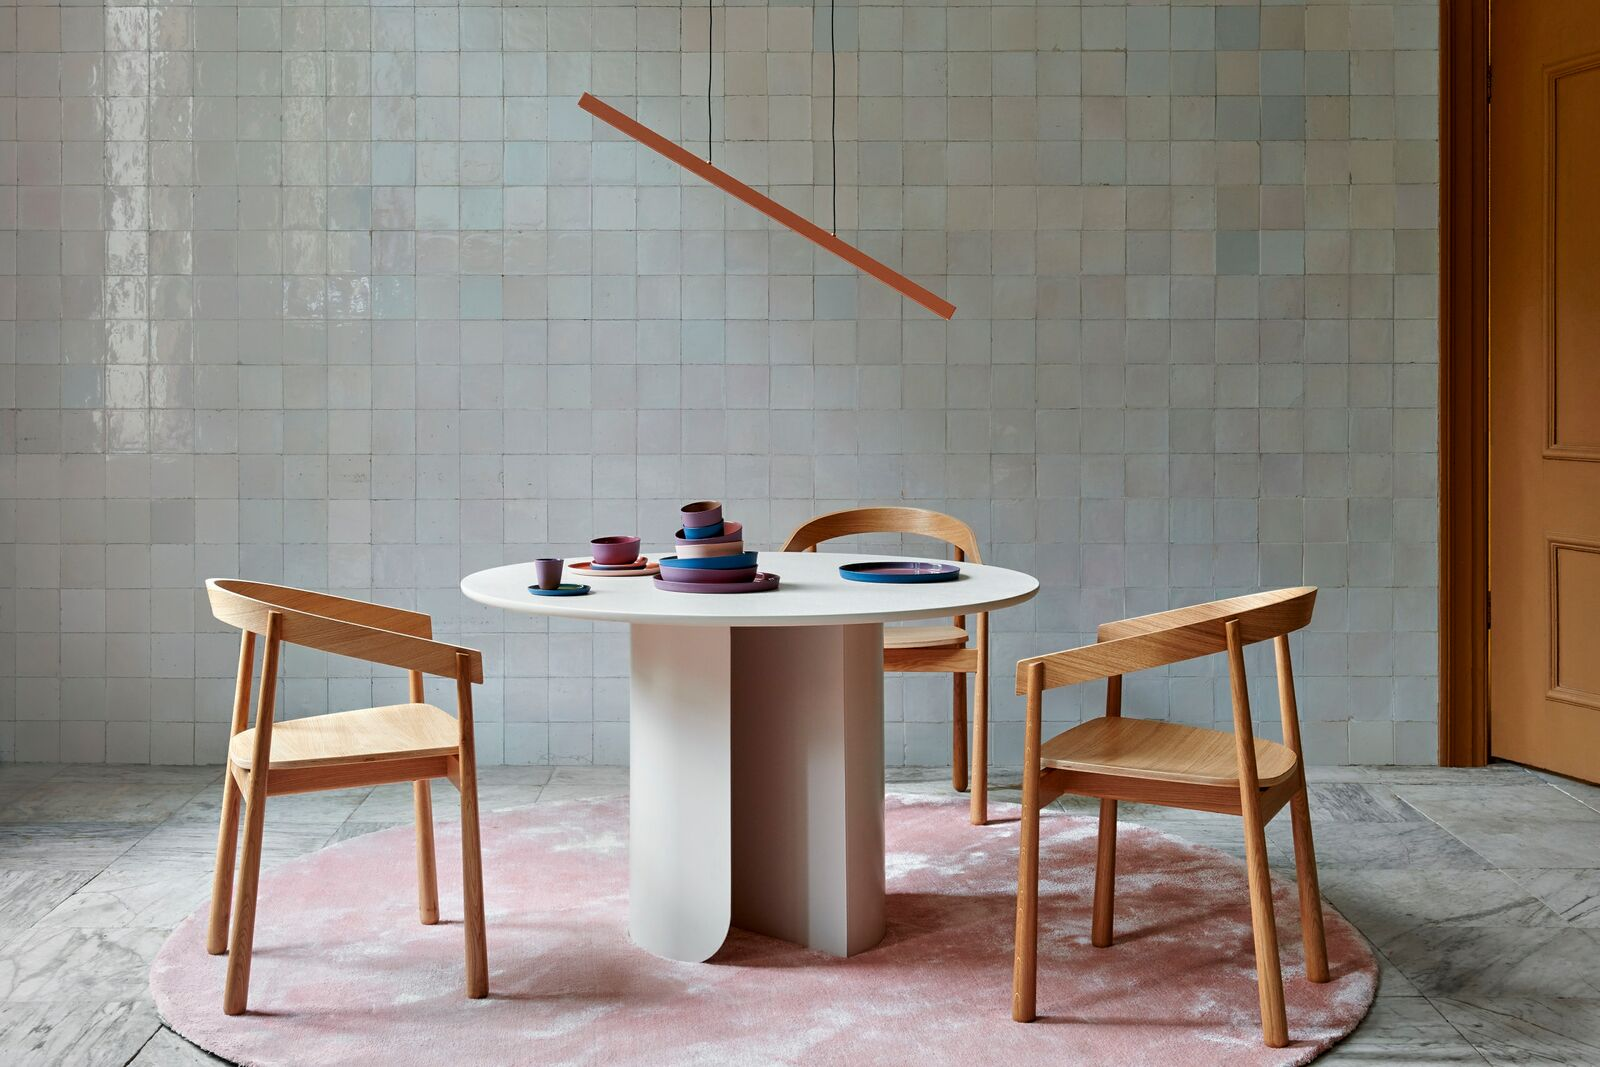 large-Plateau_dining_table_round_sand_Homerun_dining_chair_oak_wood1